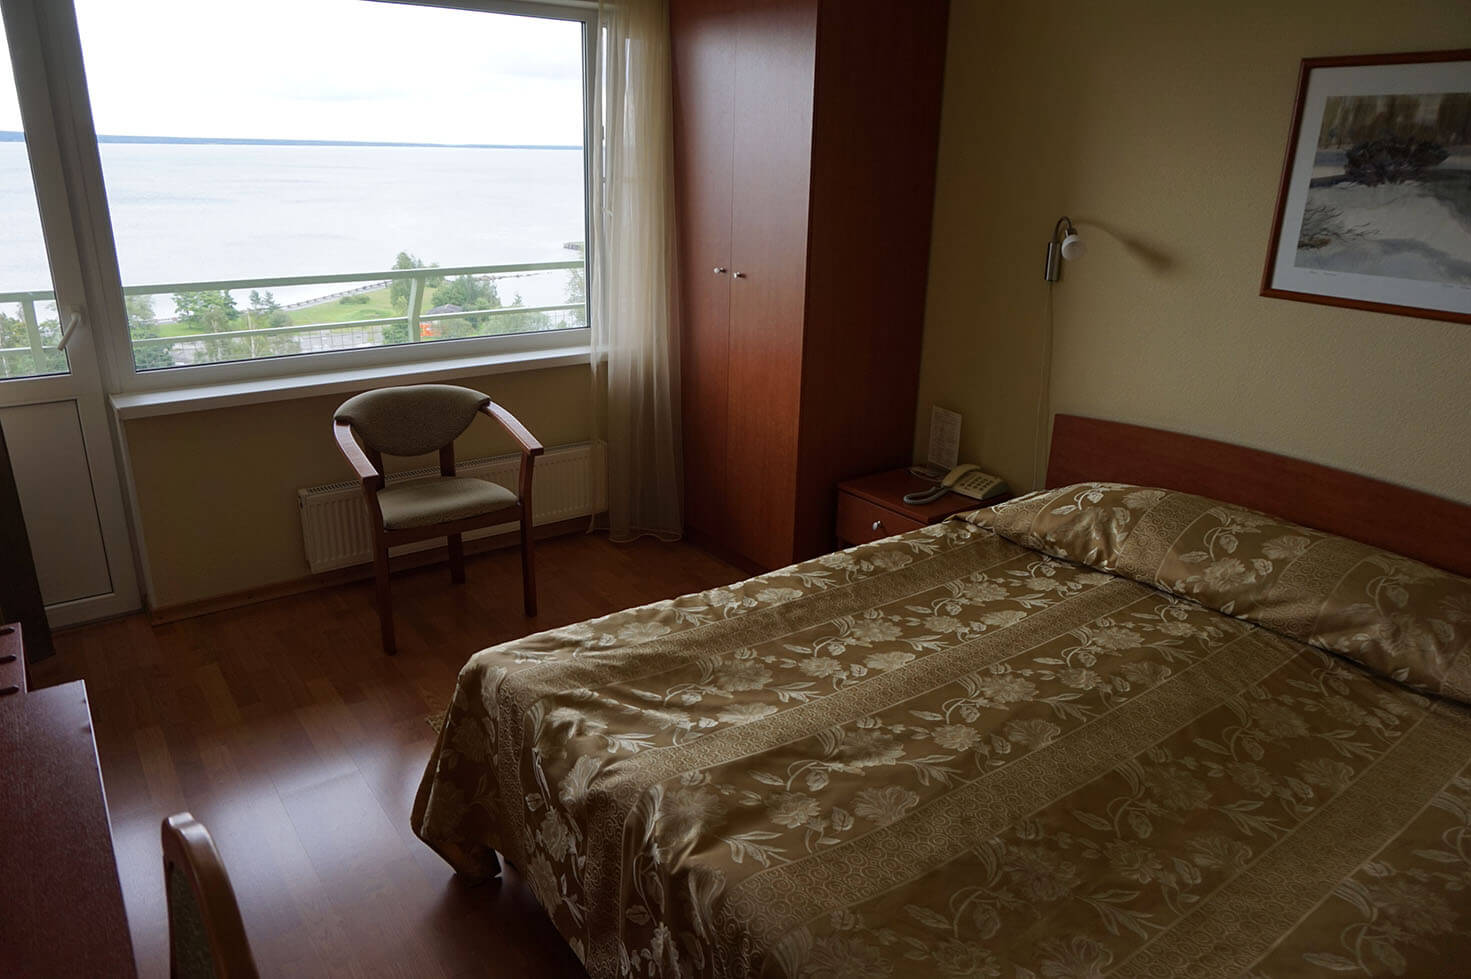 Our room in Hotel Karelia